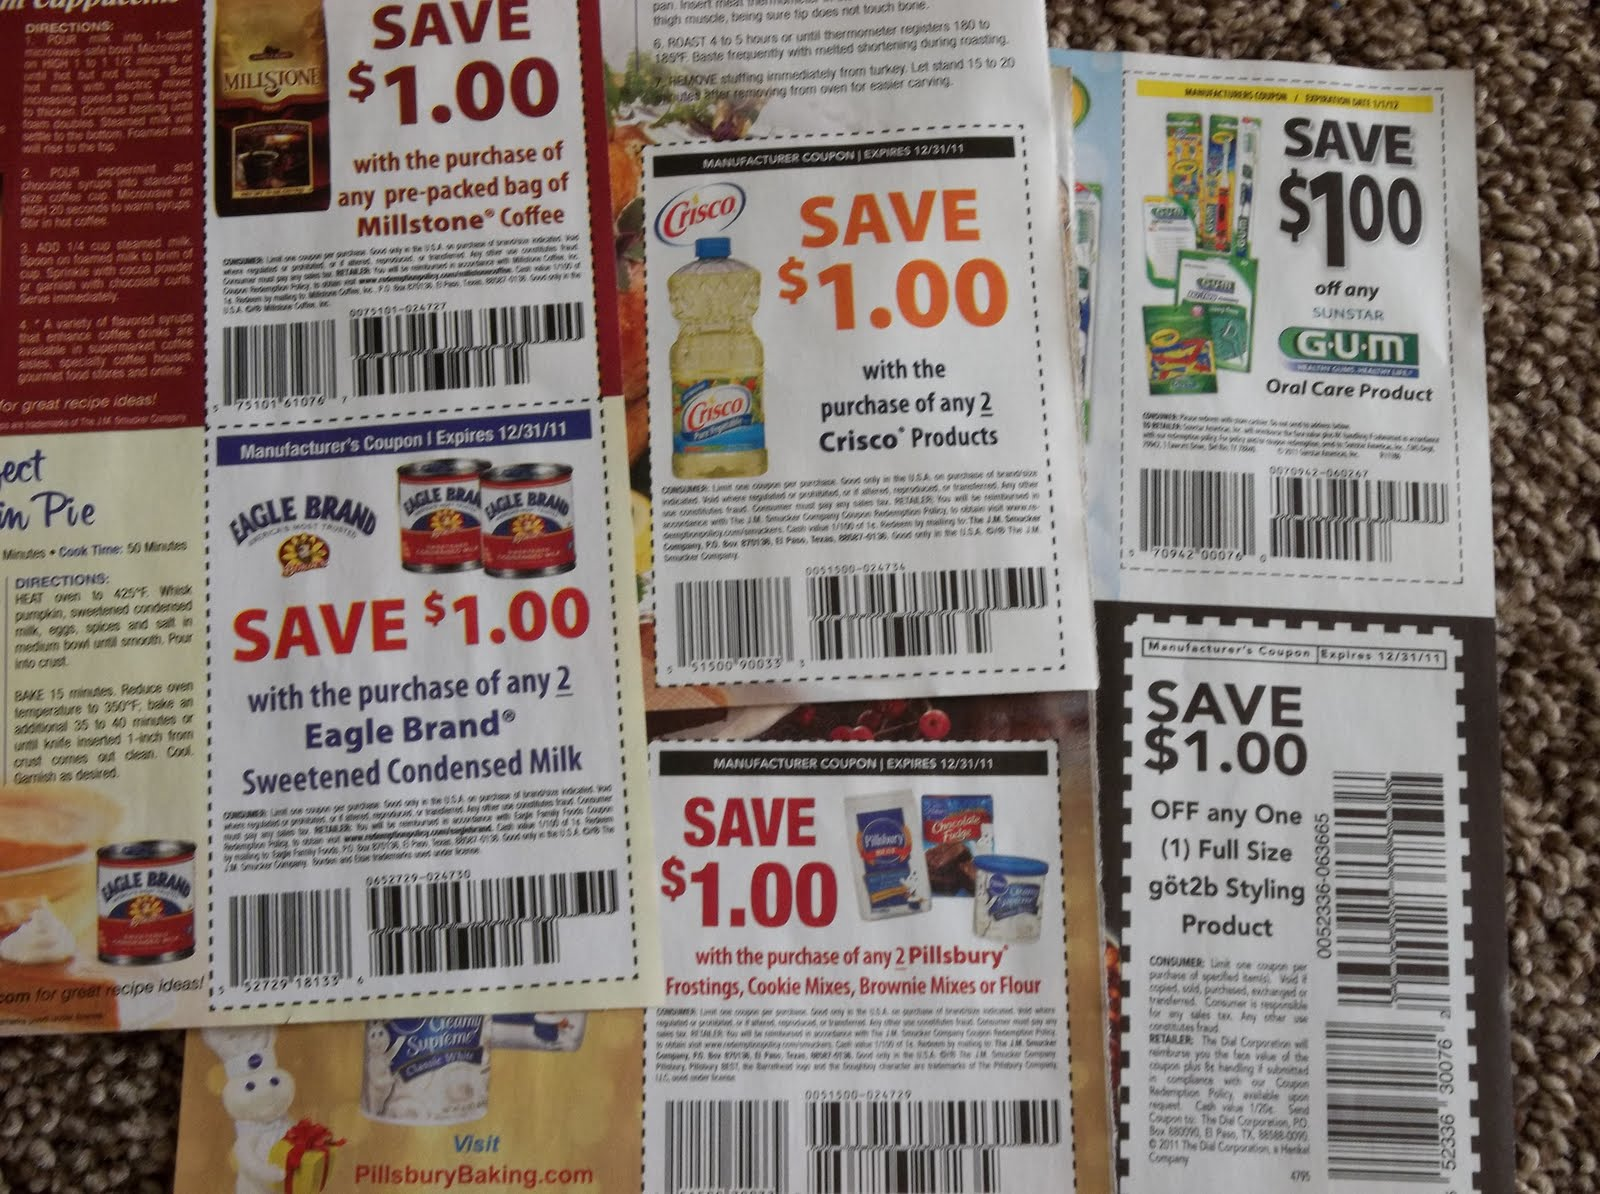 graphic relating to Scheels Coupons Printable titled Scheels discount codes printable 2018 : Dominos pizza coupon codes invest in